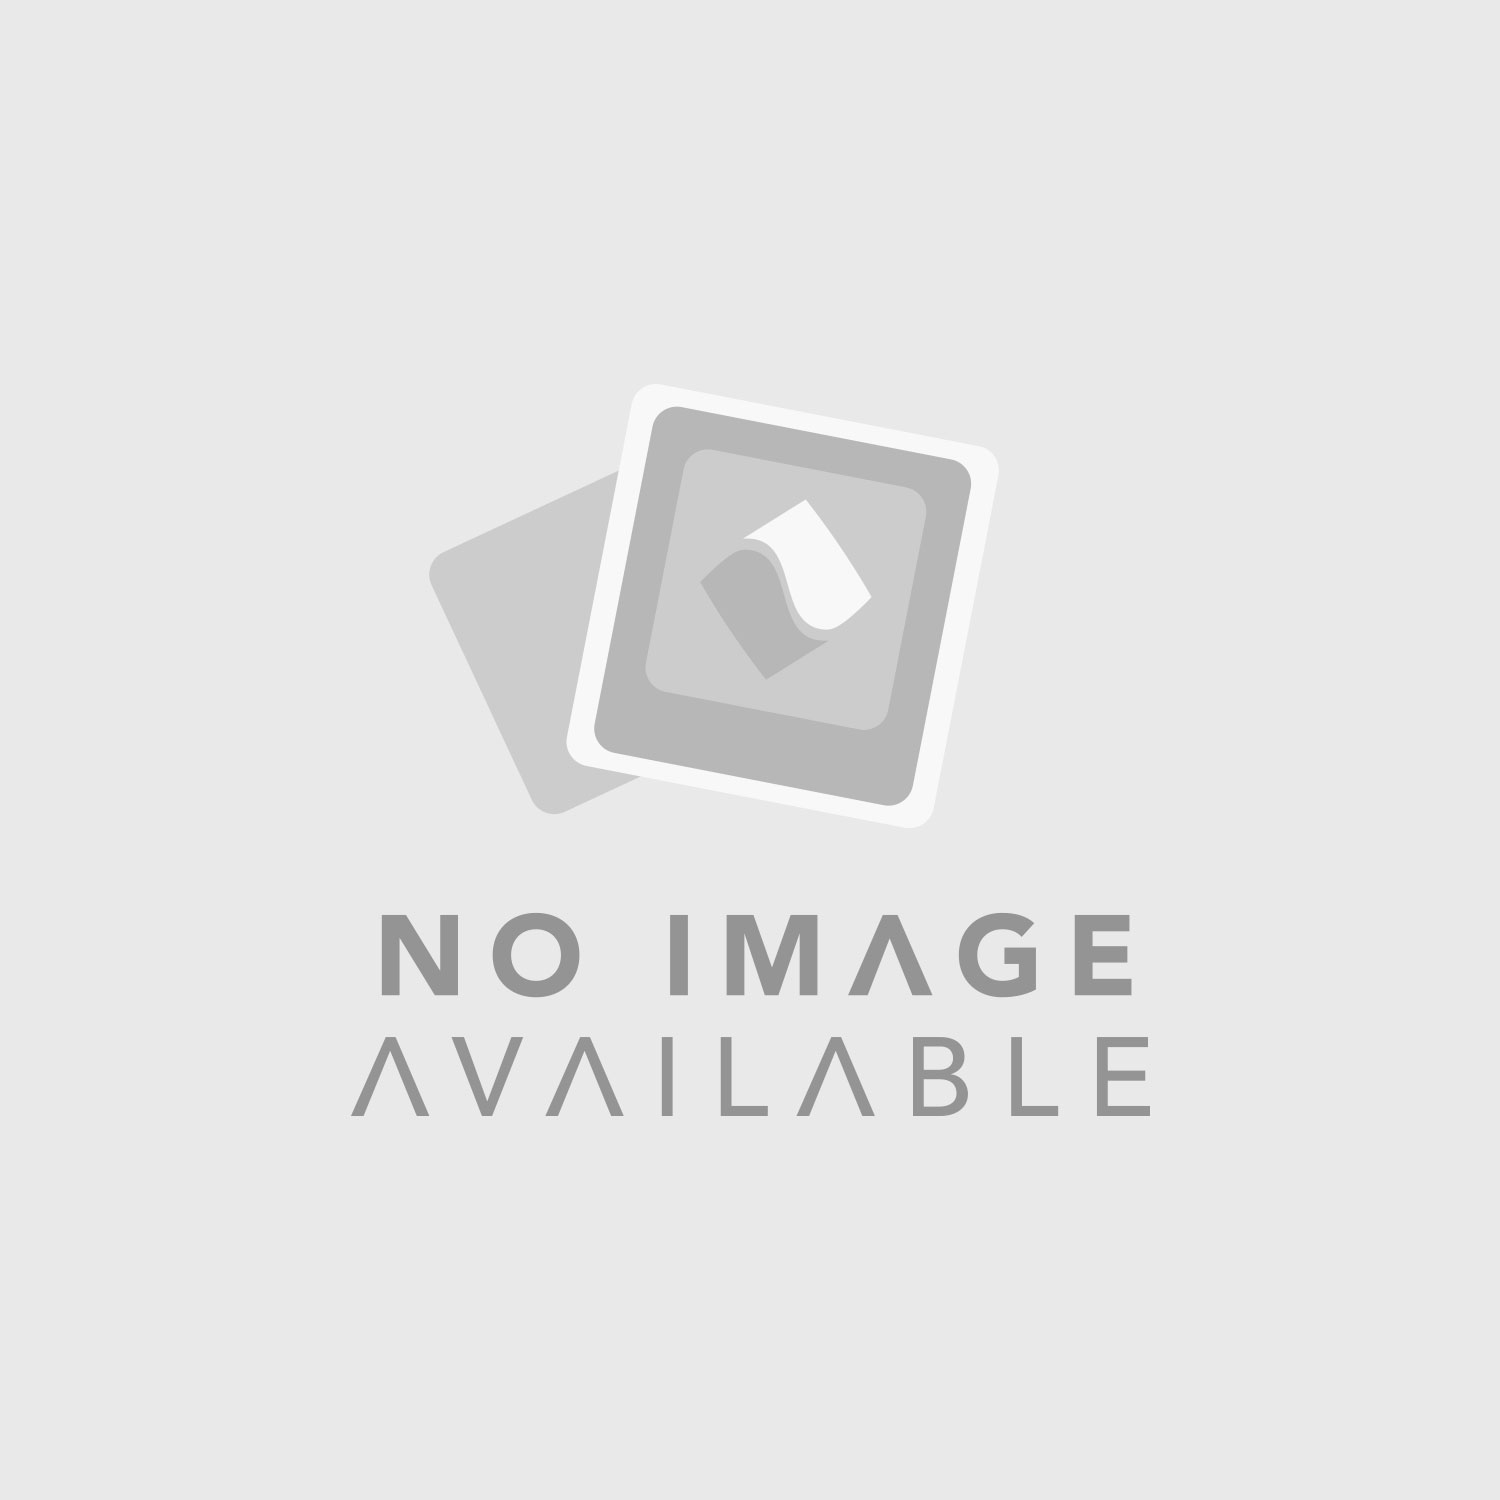 Zoom PodTrak P4 Podcast Recording Kit with Recorder, Microphone, Headphones, and Stand